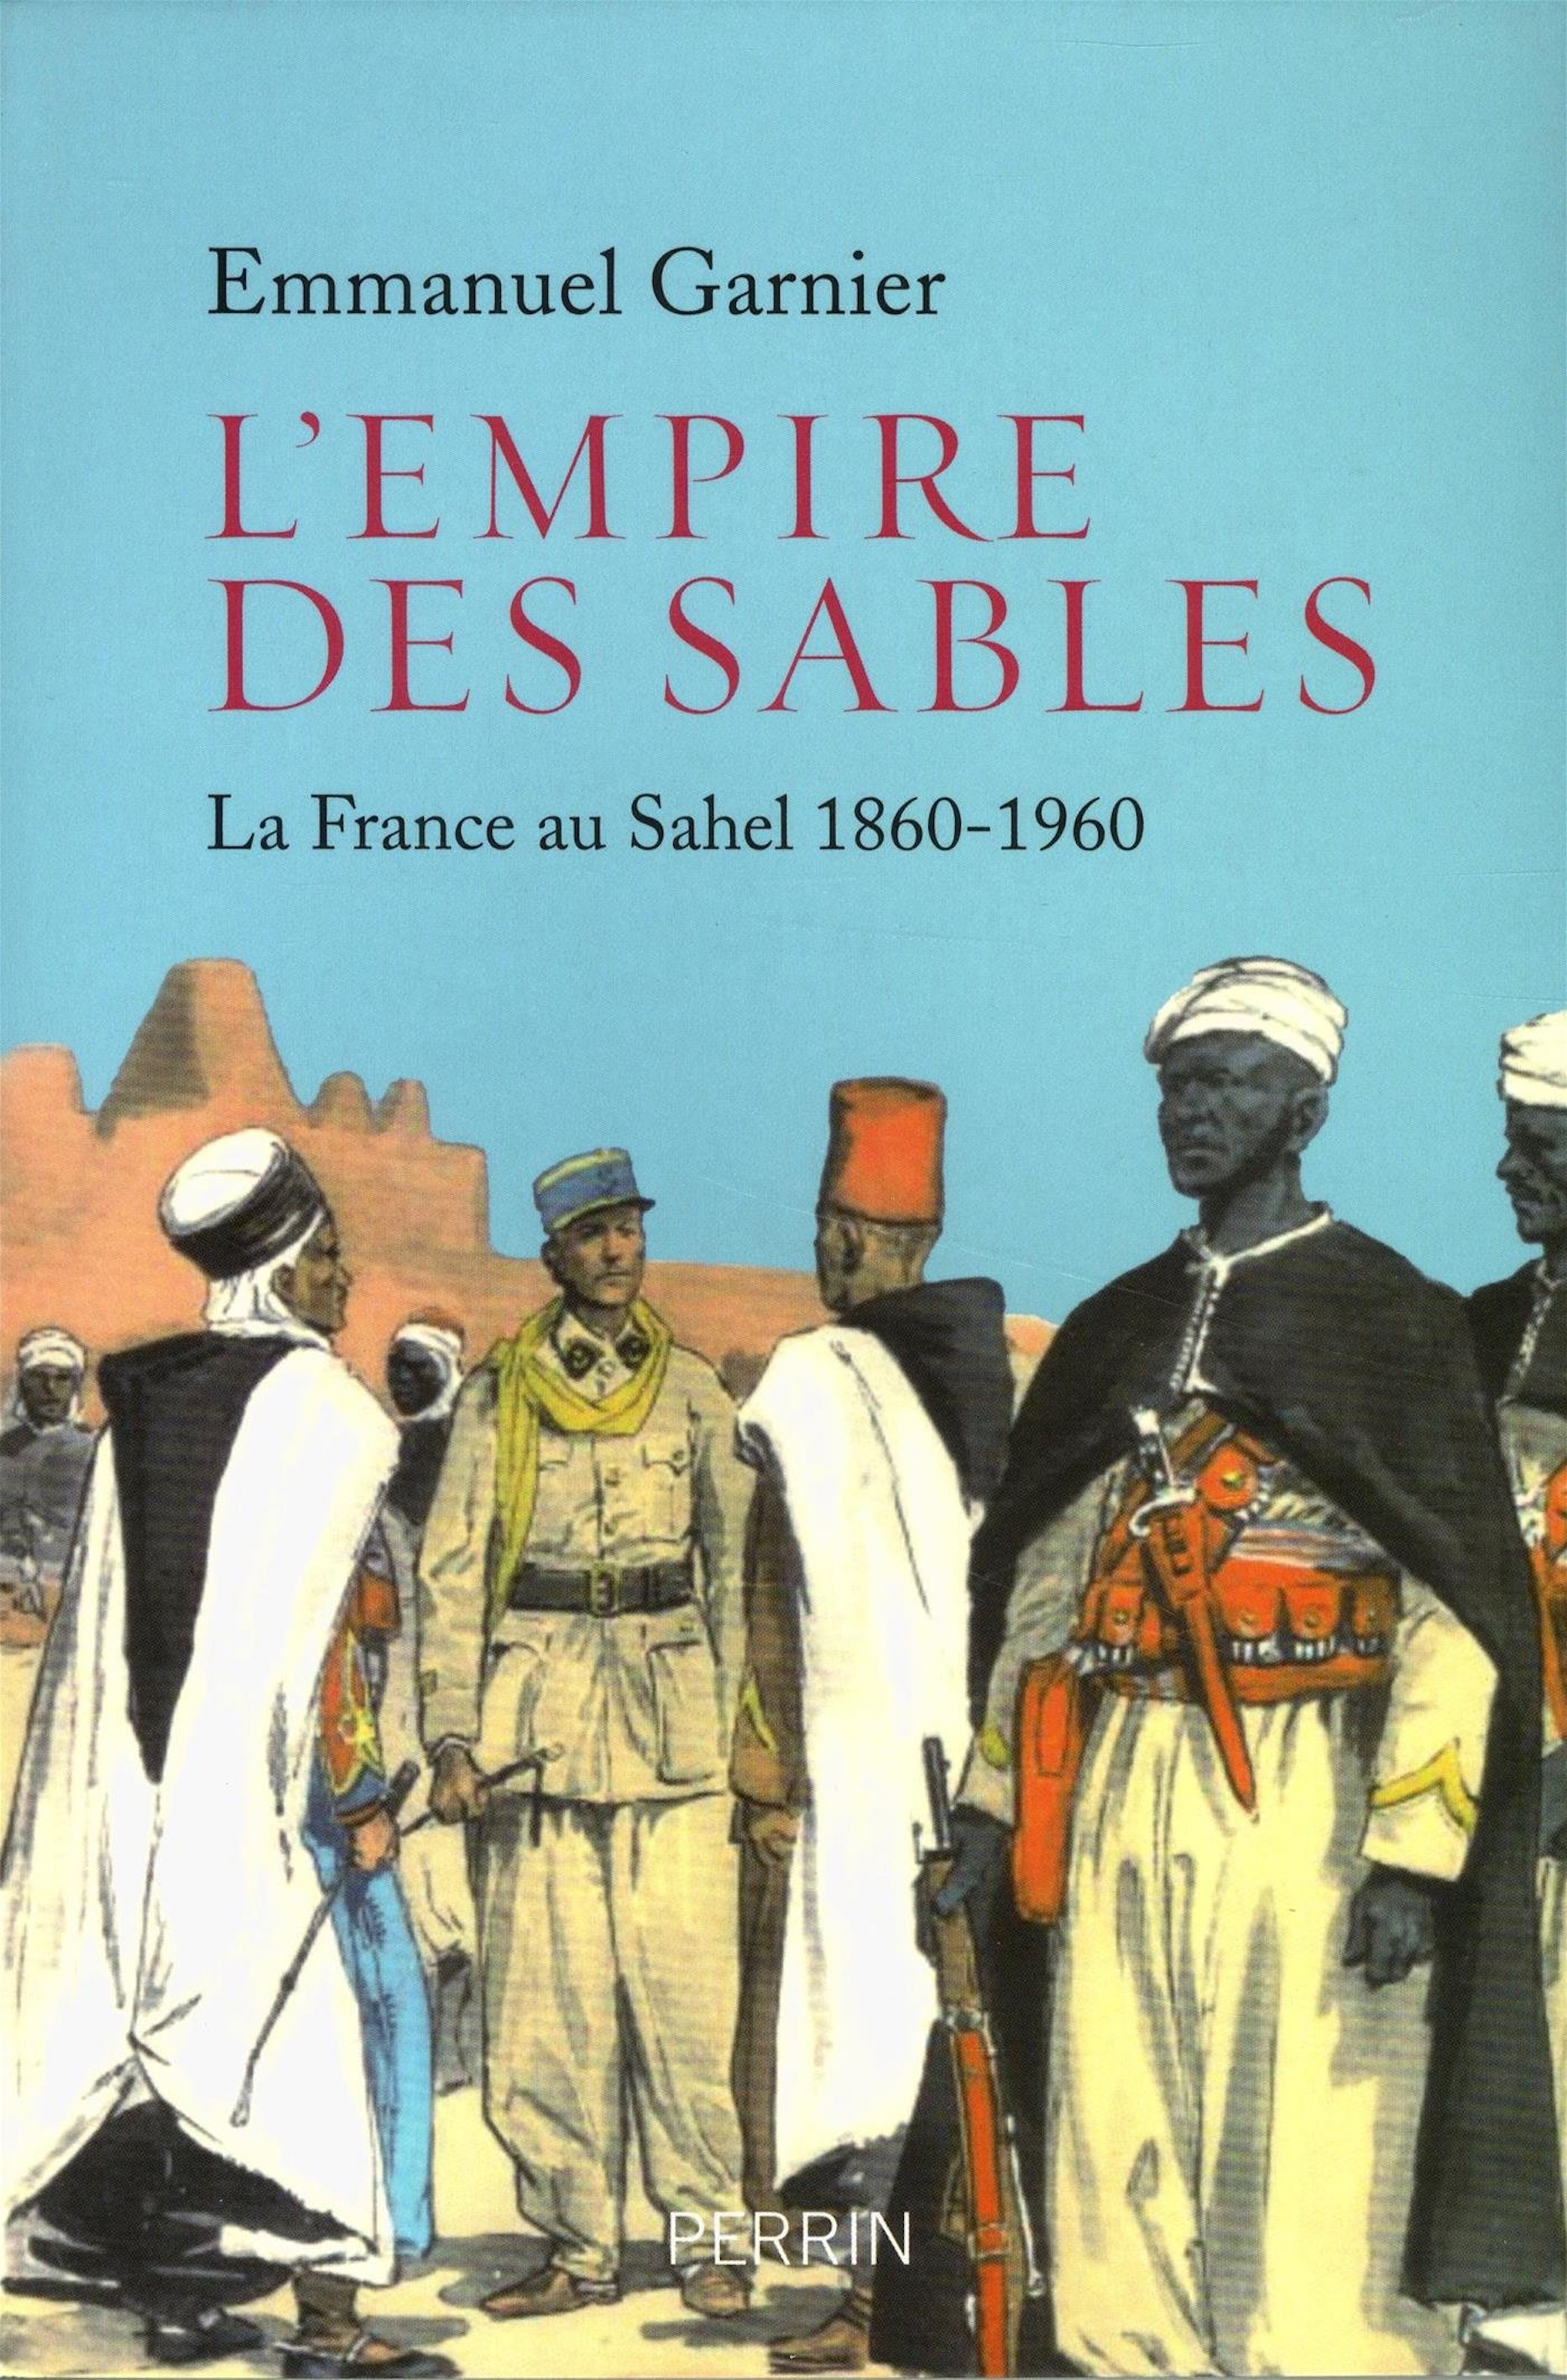 L'Empire des sables - La France au Sahel 1860-1960